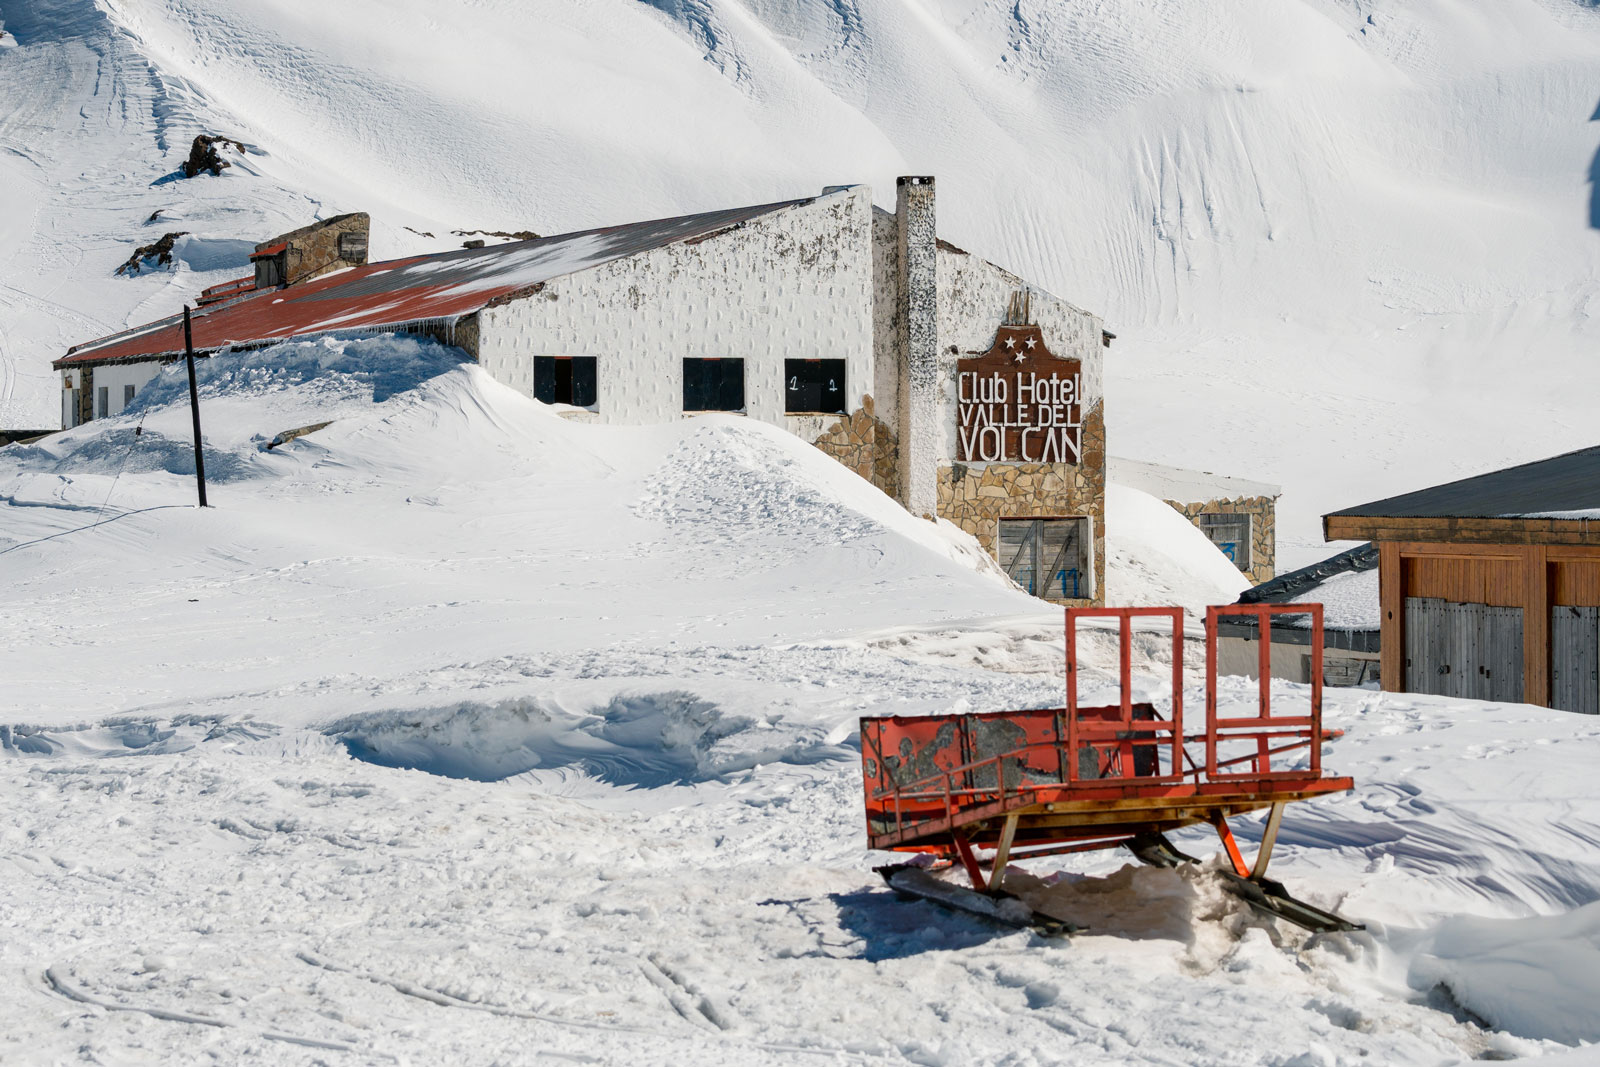 The Town of Copahue is dormant in the winter. Photo Courtesy: Ben Girardi - Adventure in Argentina